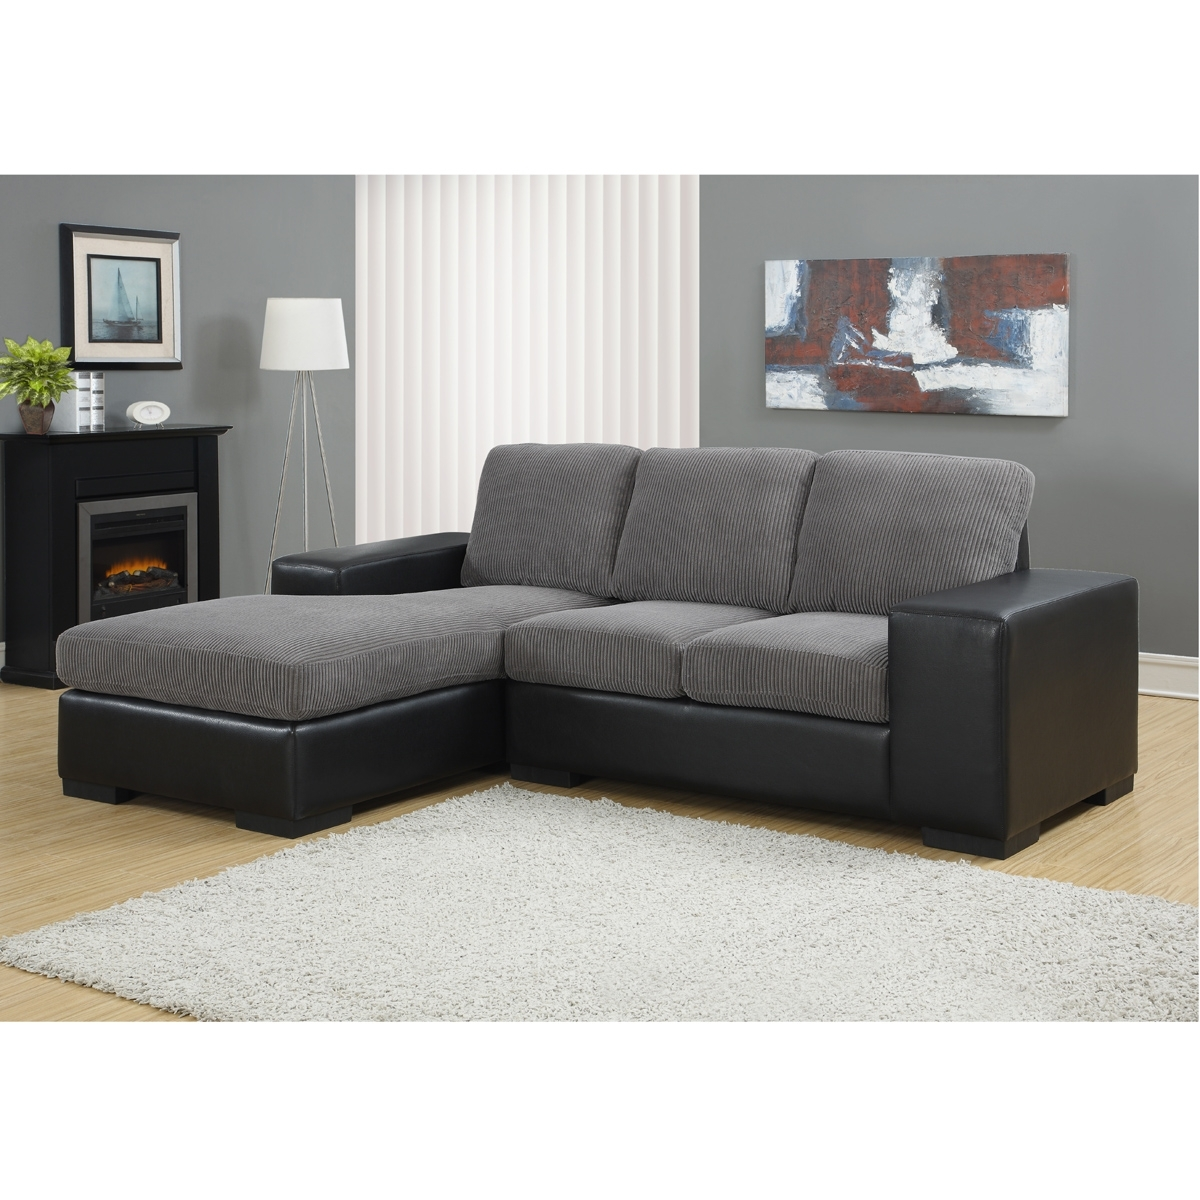 Modern Sectional Sofas (View 7 of 20)